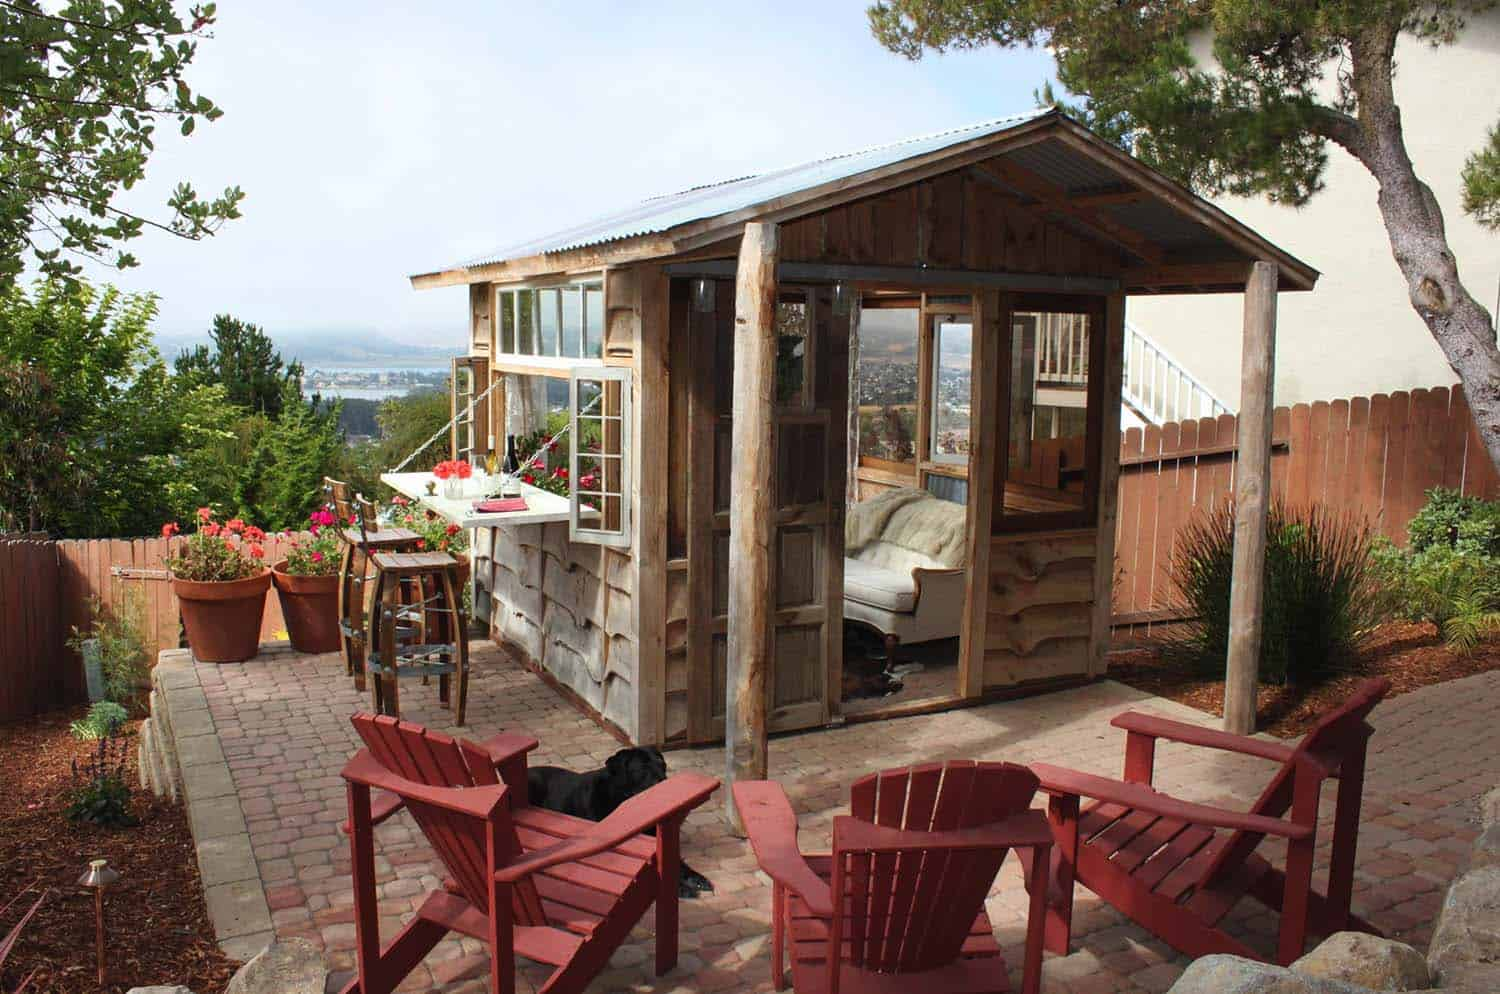 13+ Wonderfully Inspiring She Shed Ideas To Adorn Your Backyard